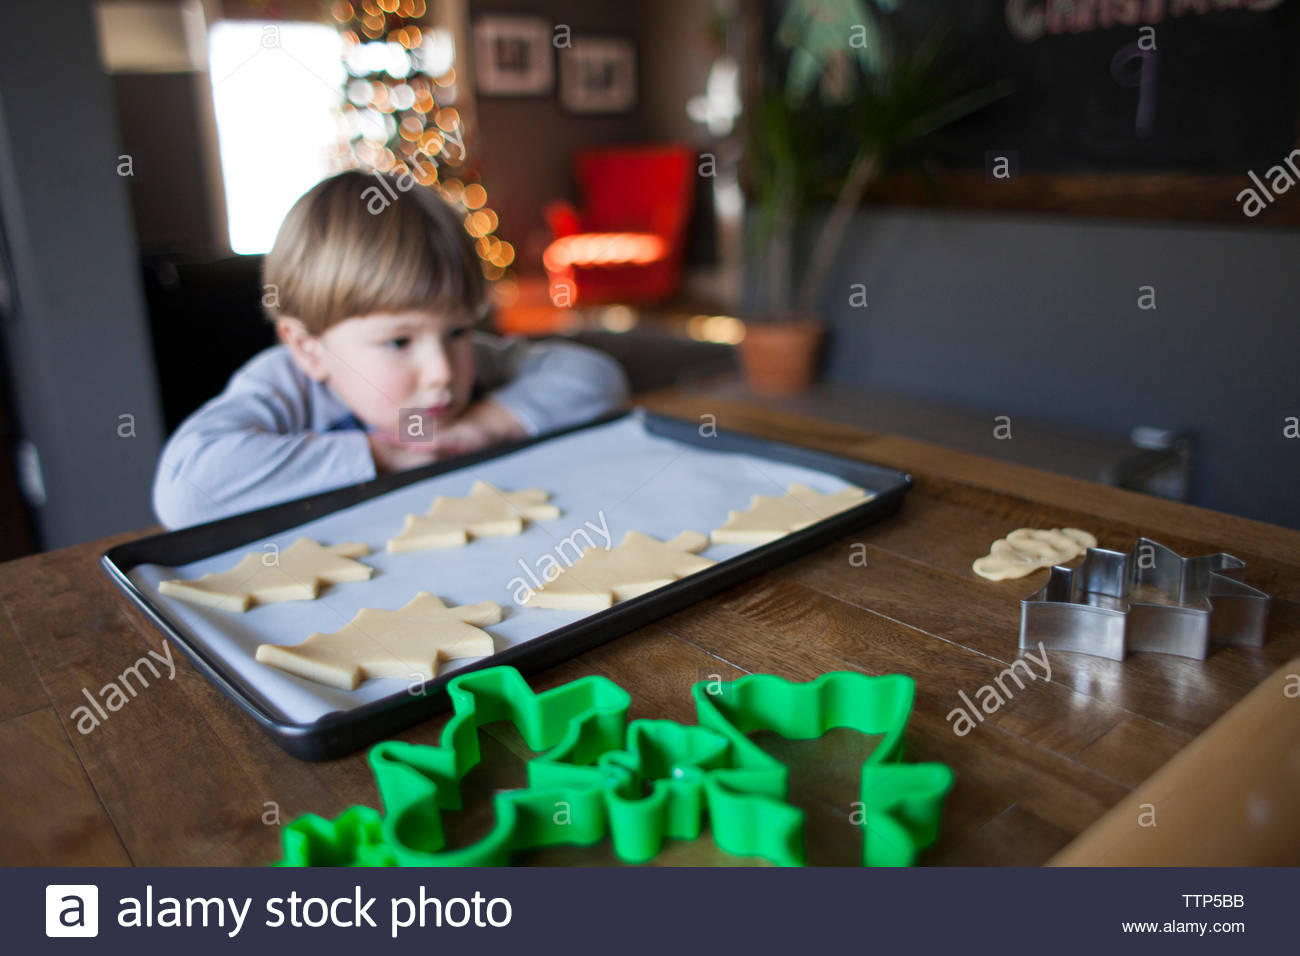 Cute boy looking away while standing by kitchen counter at home - Stock Image